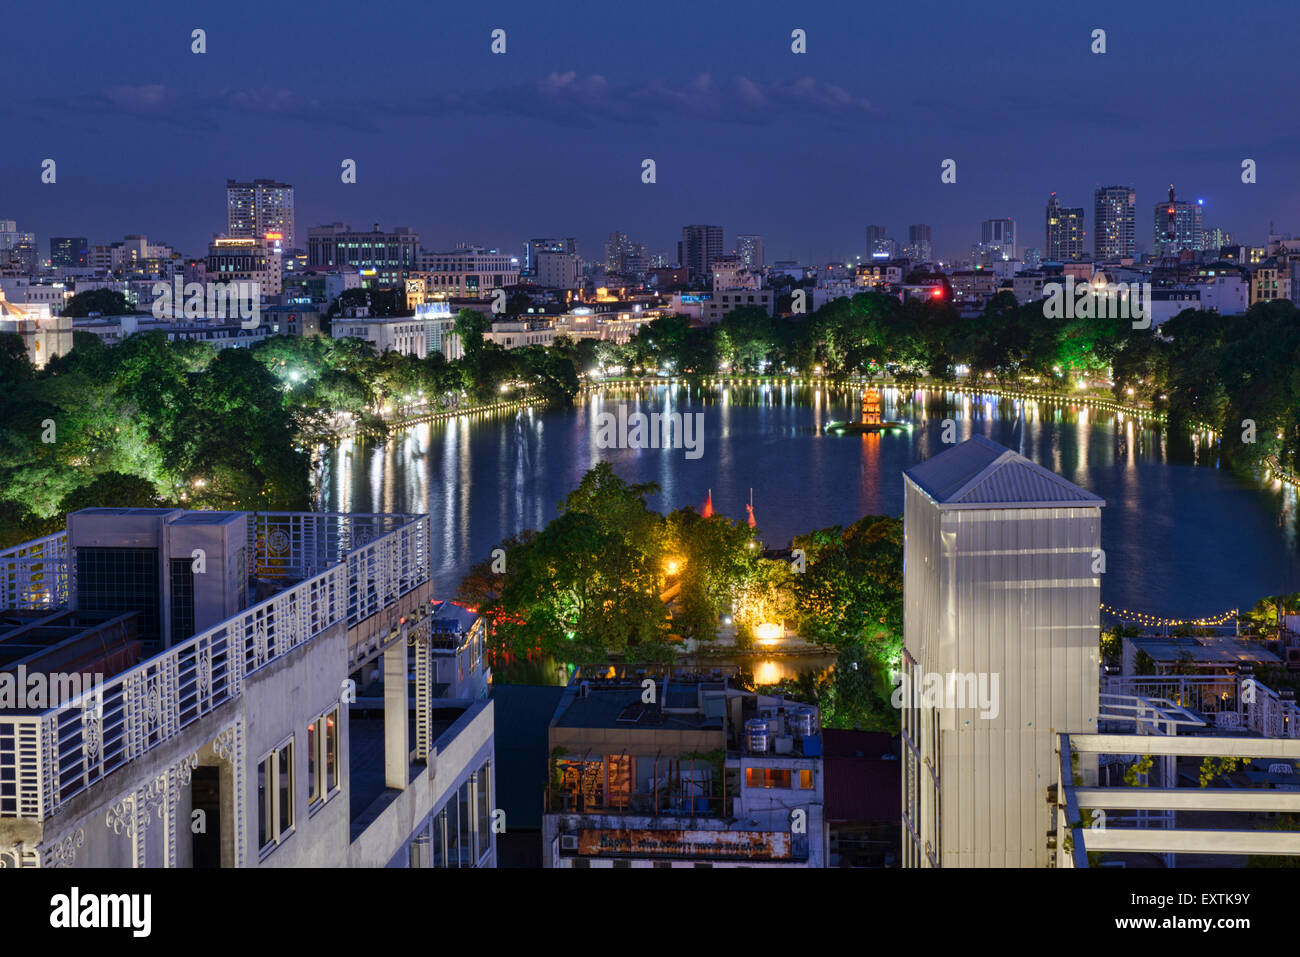 View of Hoan Kiem Lake at night, Hanoi, Vietnam - Stock Image